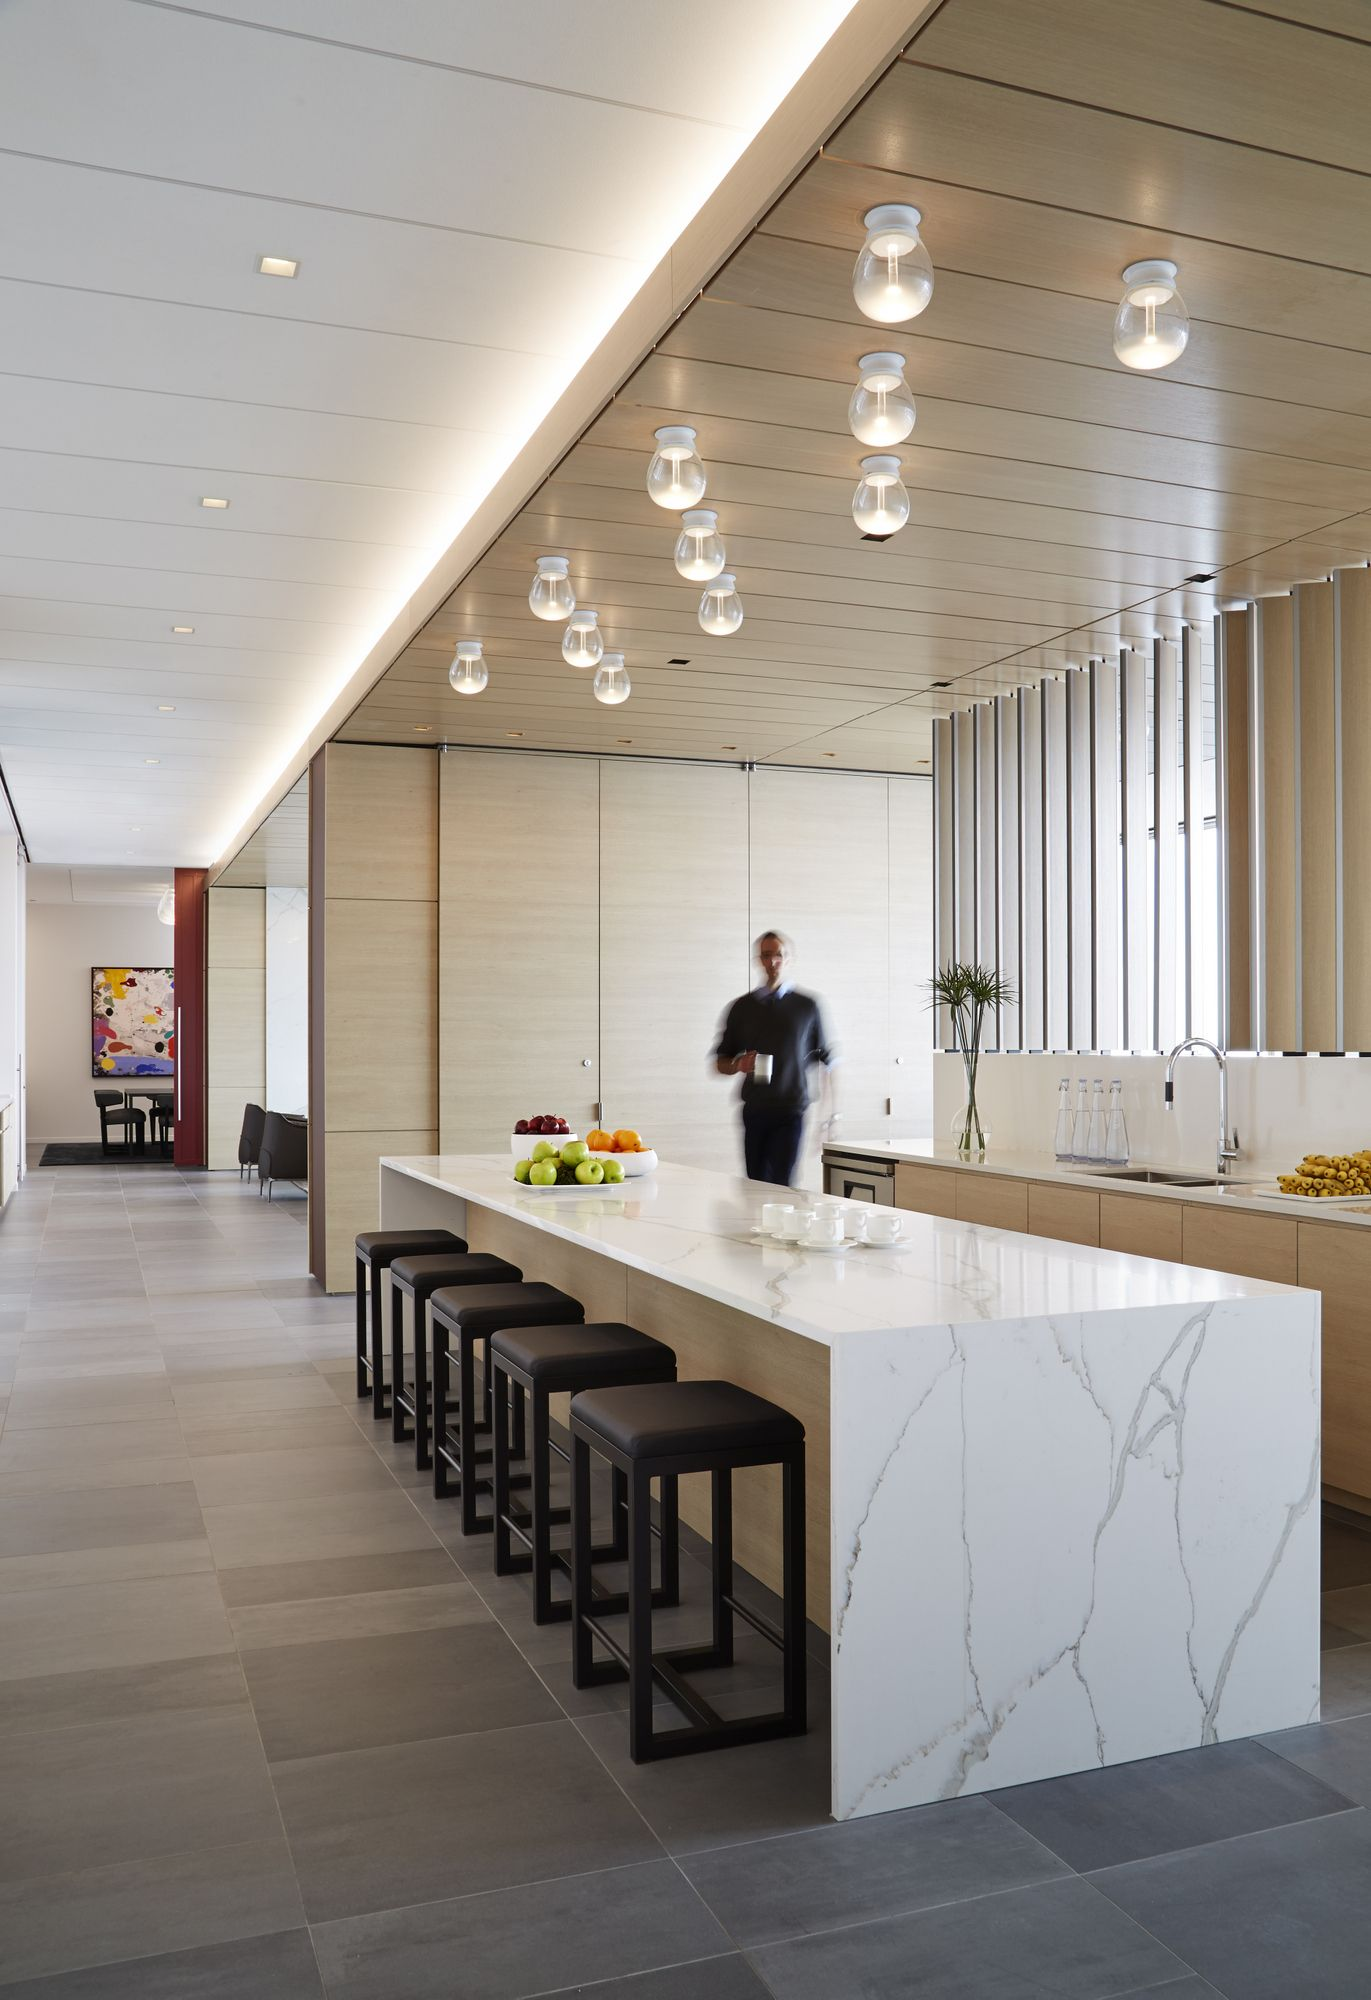 Office tour mcdermott will emery offices chicago - Interior design firms chicago ...